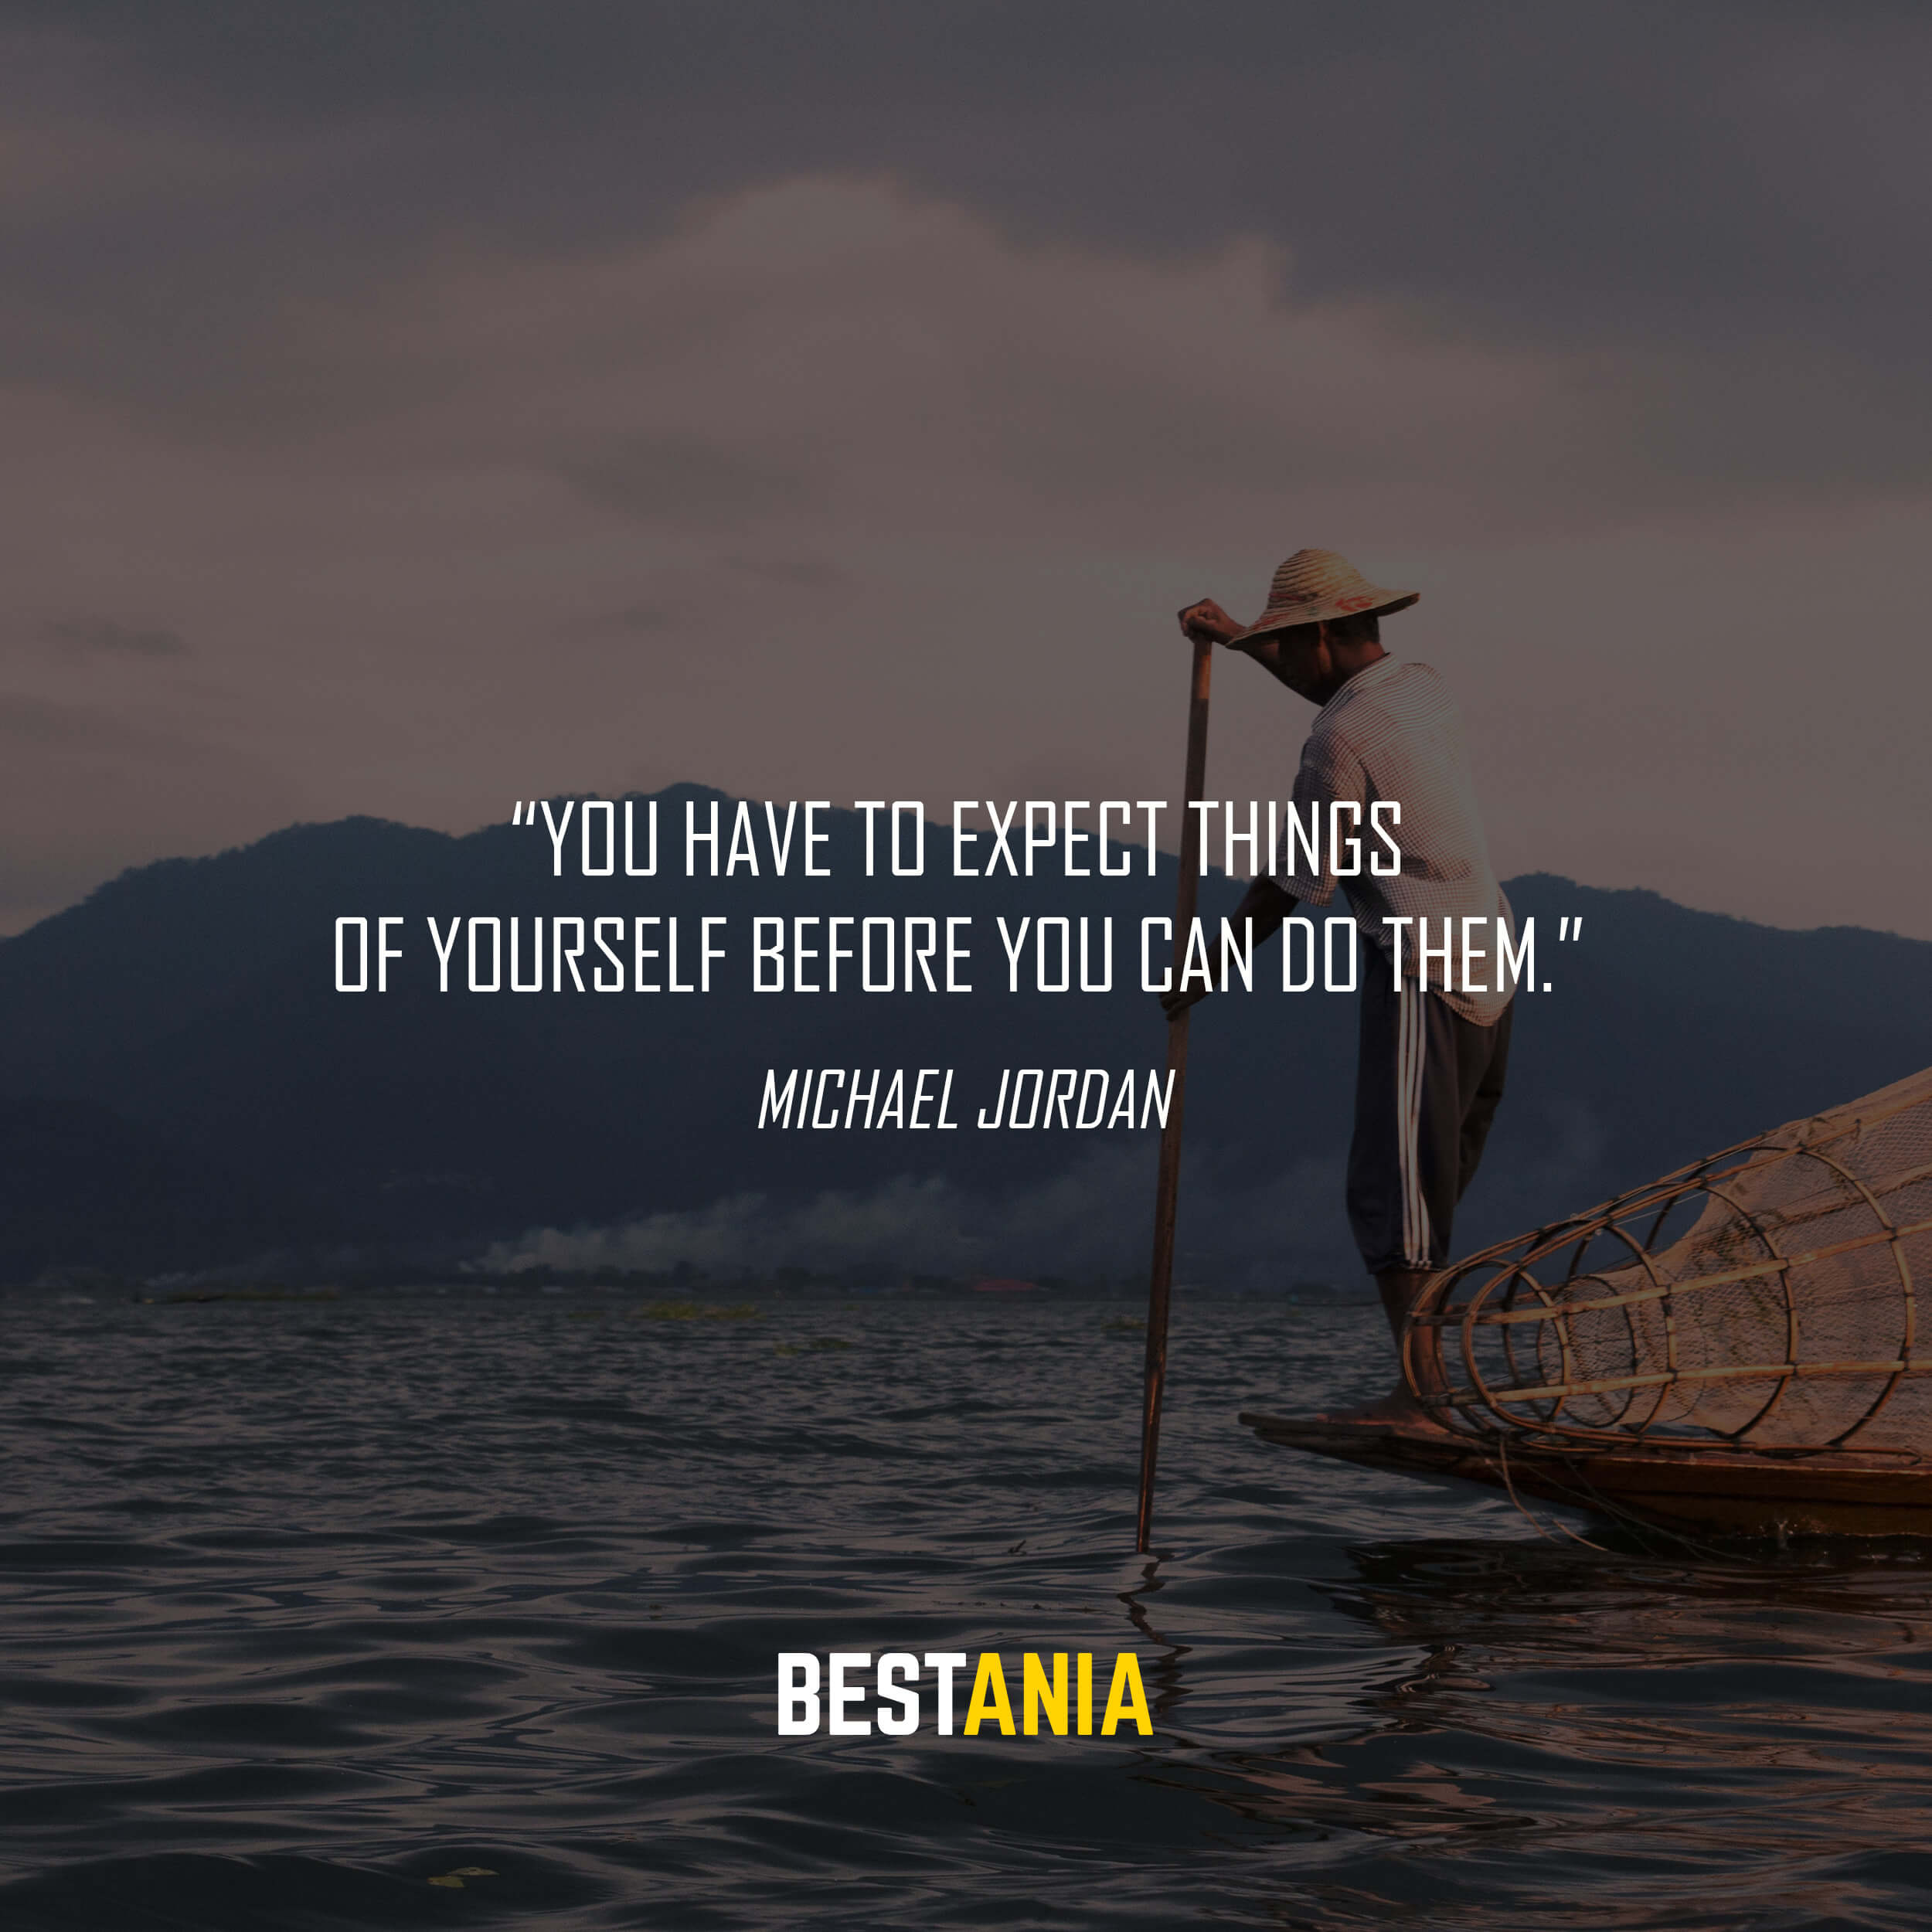 """You have to expect things of yourself before you can do them."" – Michael Jordan"